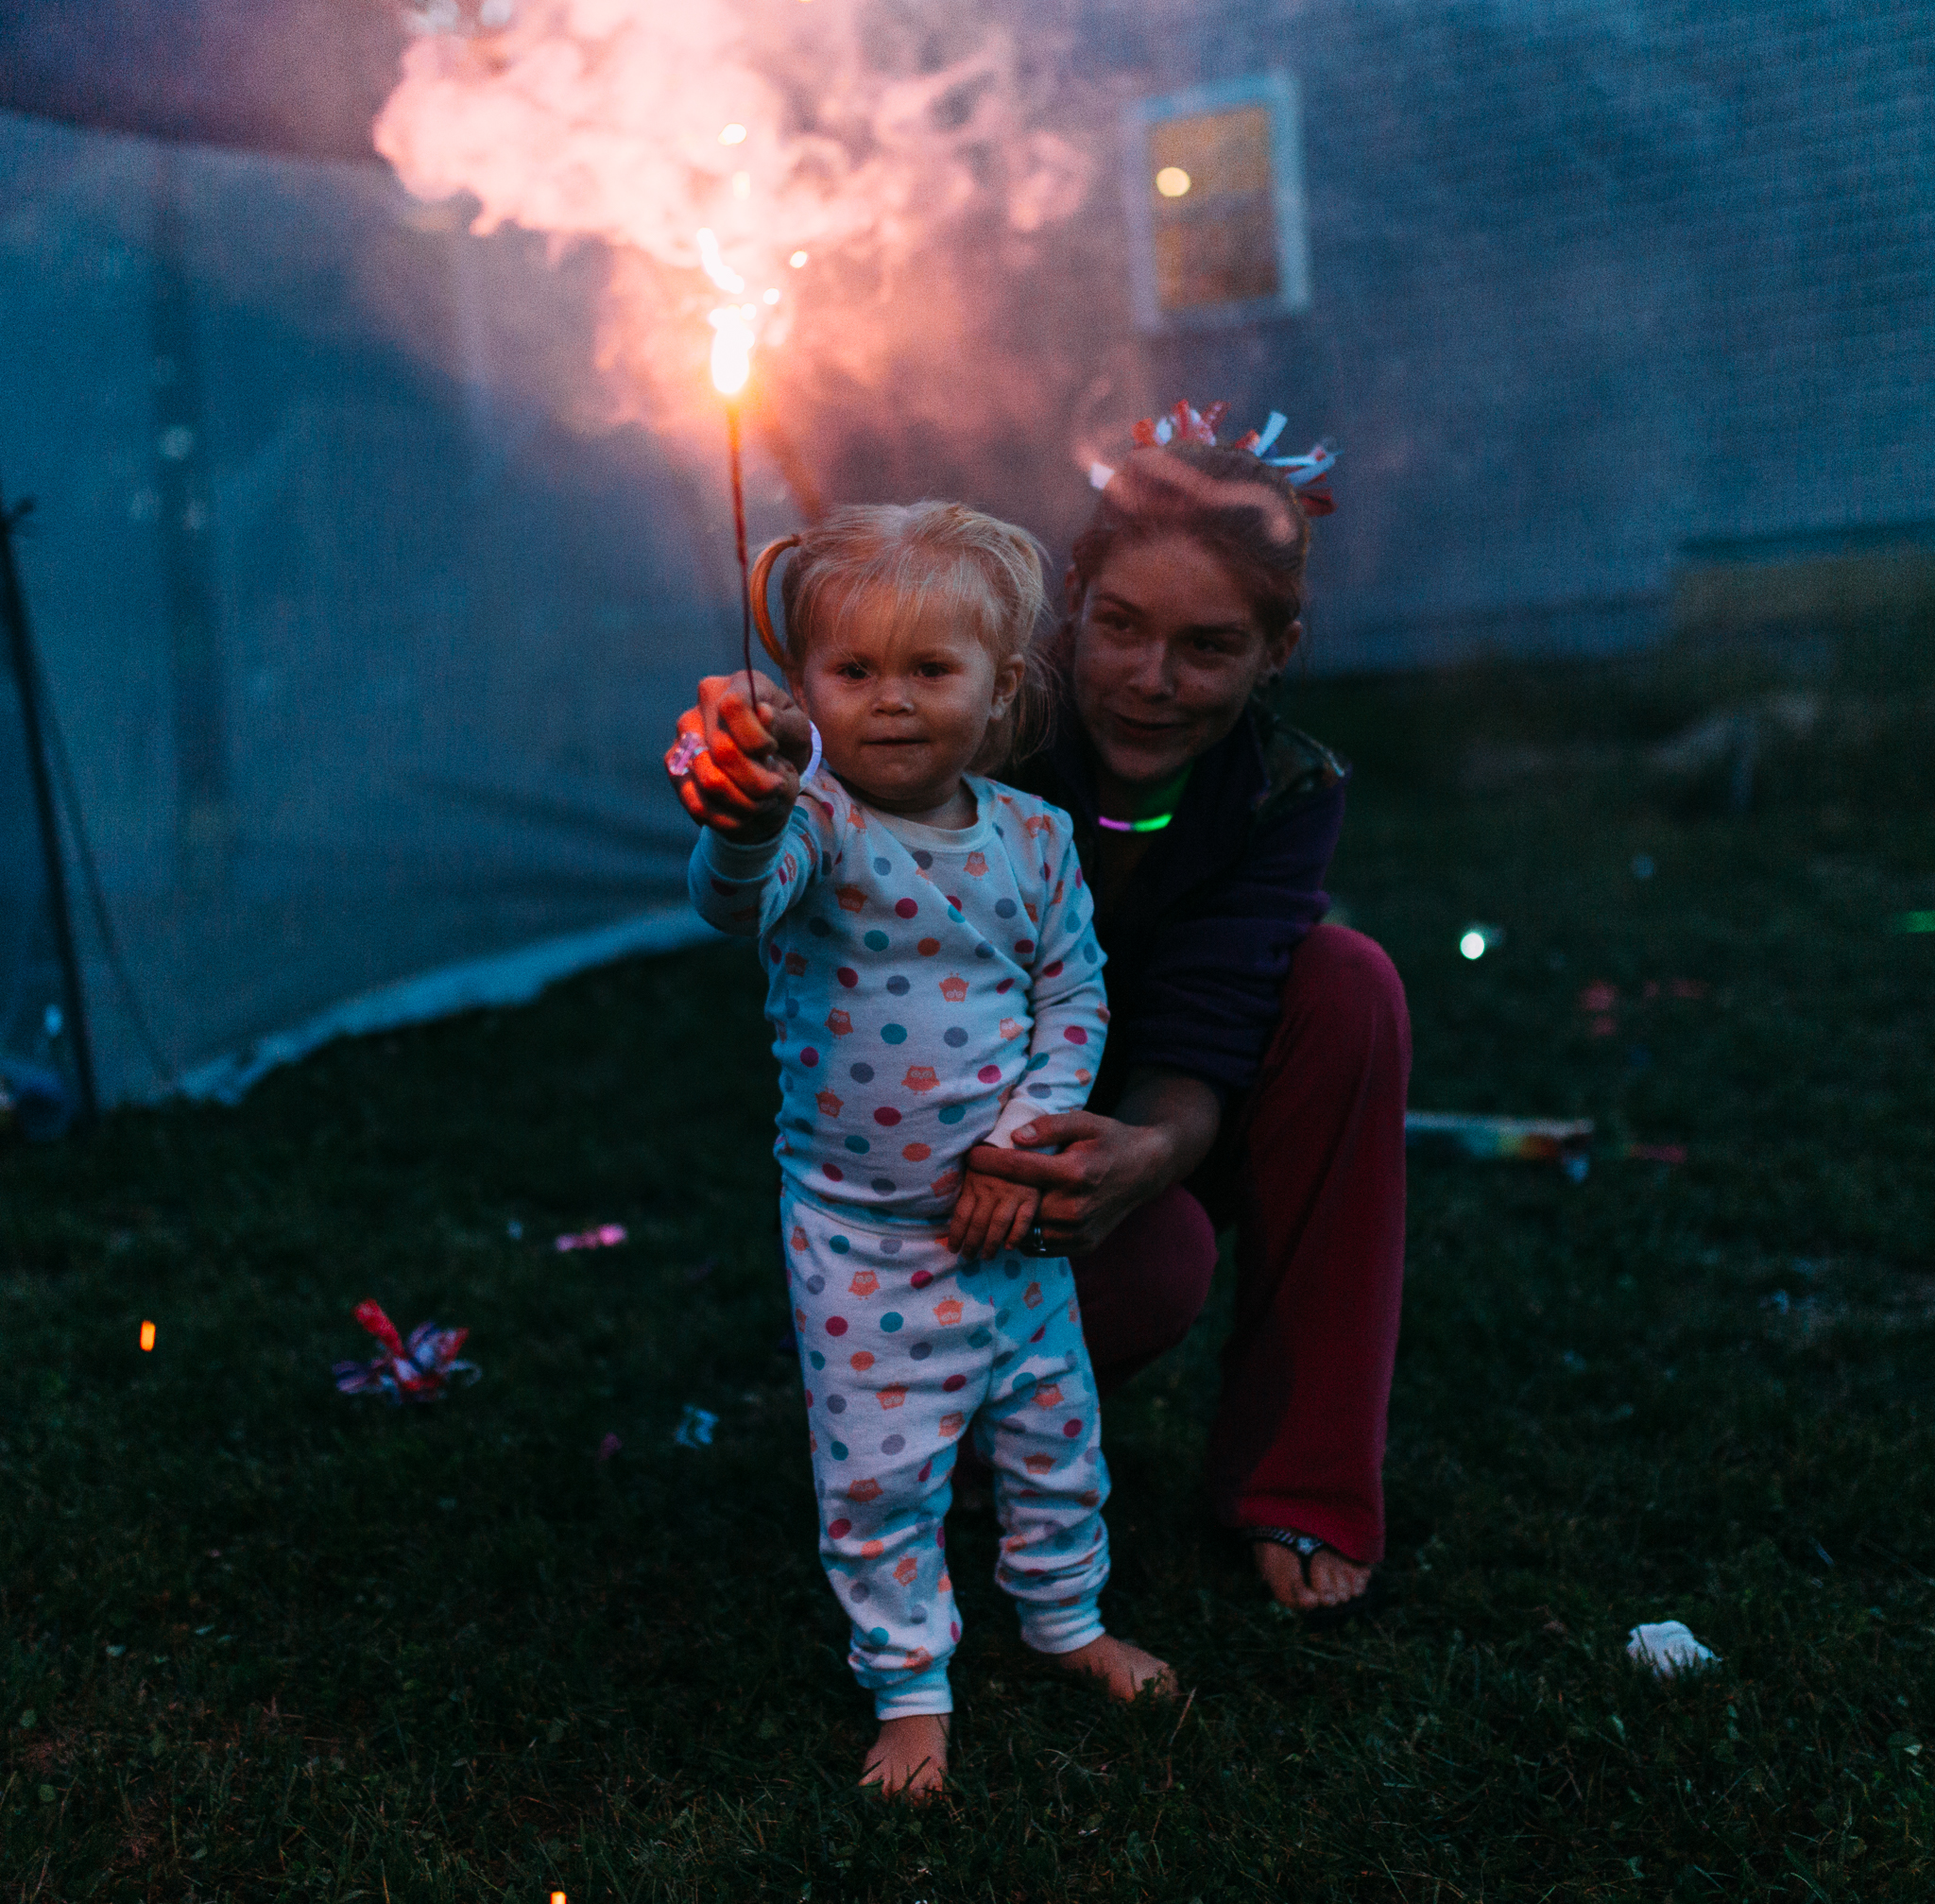 4th-july-fireworks-sparklers-documentary-family-party-photography-4.jpg